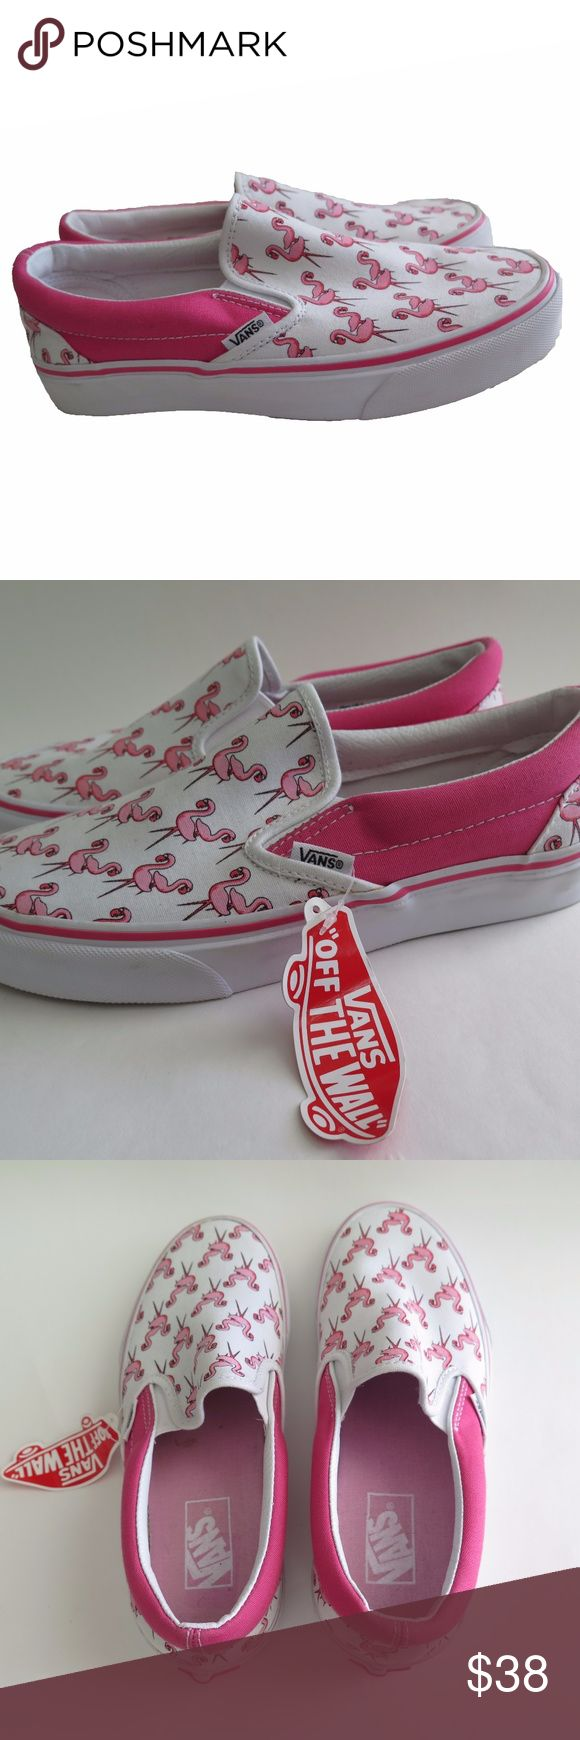 """NEW Vans Flamingo 8.5 Canvas Skate Shoes Pink Slip For sale are these Rare NEW Flamingo Vans.   Size: 8.5 in Women's (7 in Men's)  Toebox: 3.5""""  Length: 10.5""""  Color: White, Pink   *Note- These have a little yellow mark on the inside which is very minimal. See photos for reference.   * Photos and measurements are featured on the listing to provide proof of authenticity and size. Since in-depth details is provided, Returns are not accepted.  * Feel free to contact me for further inquirers…"""